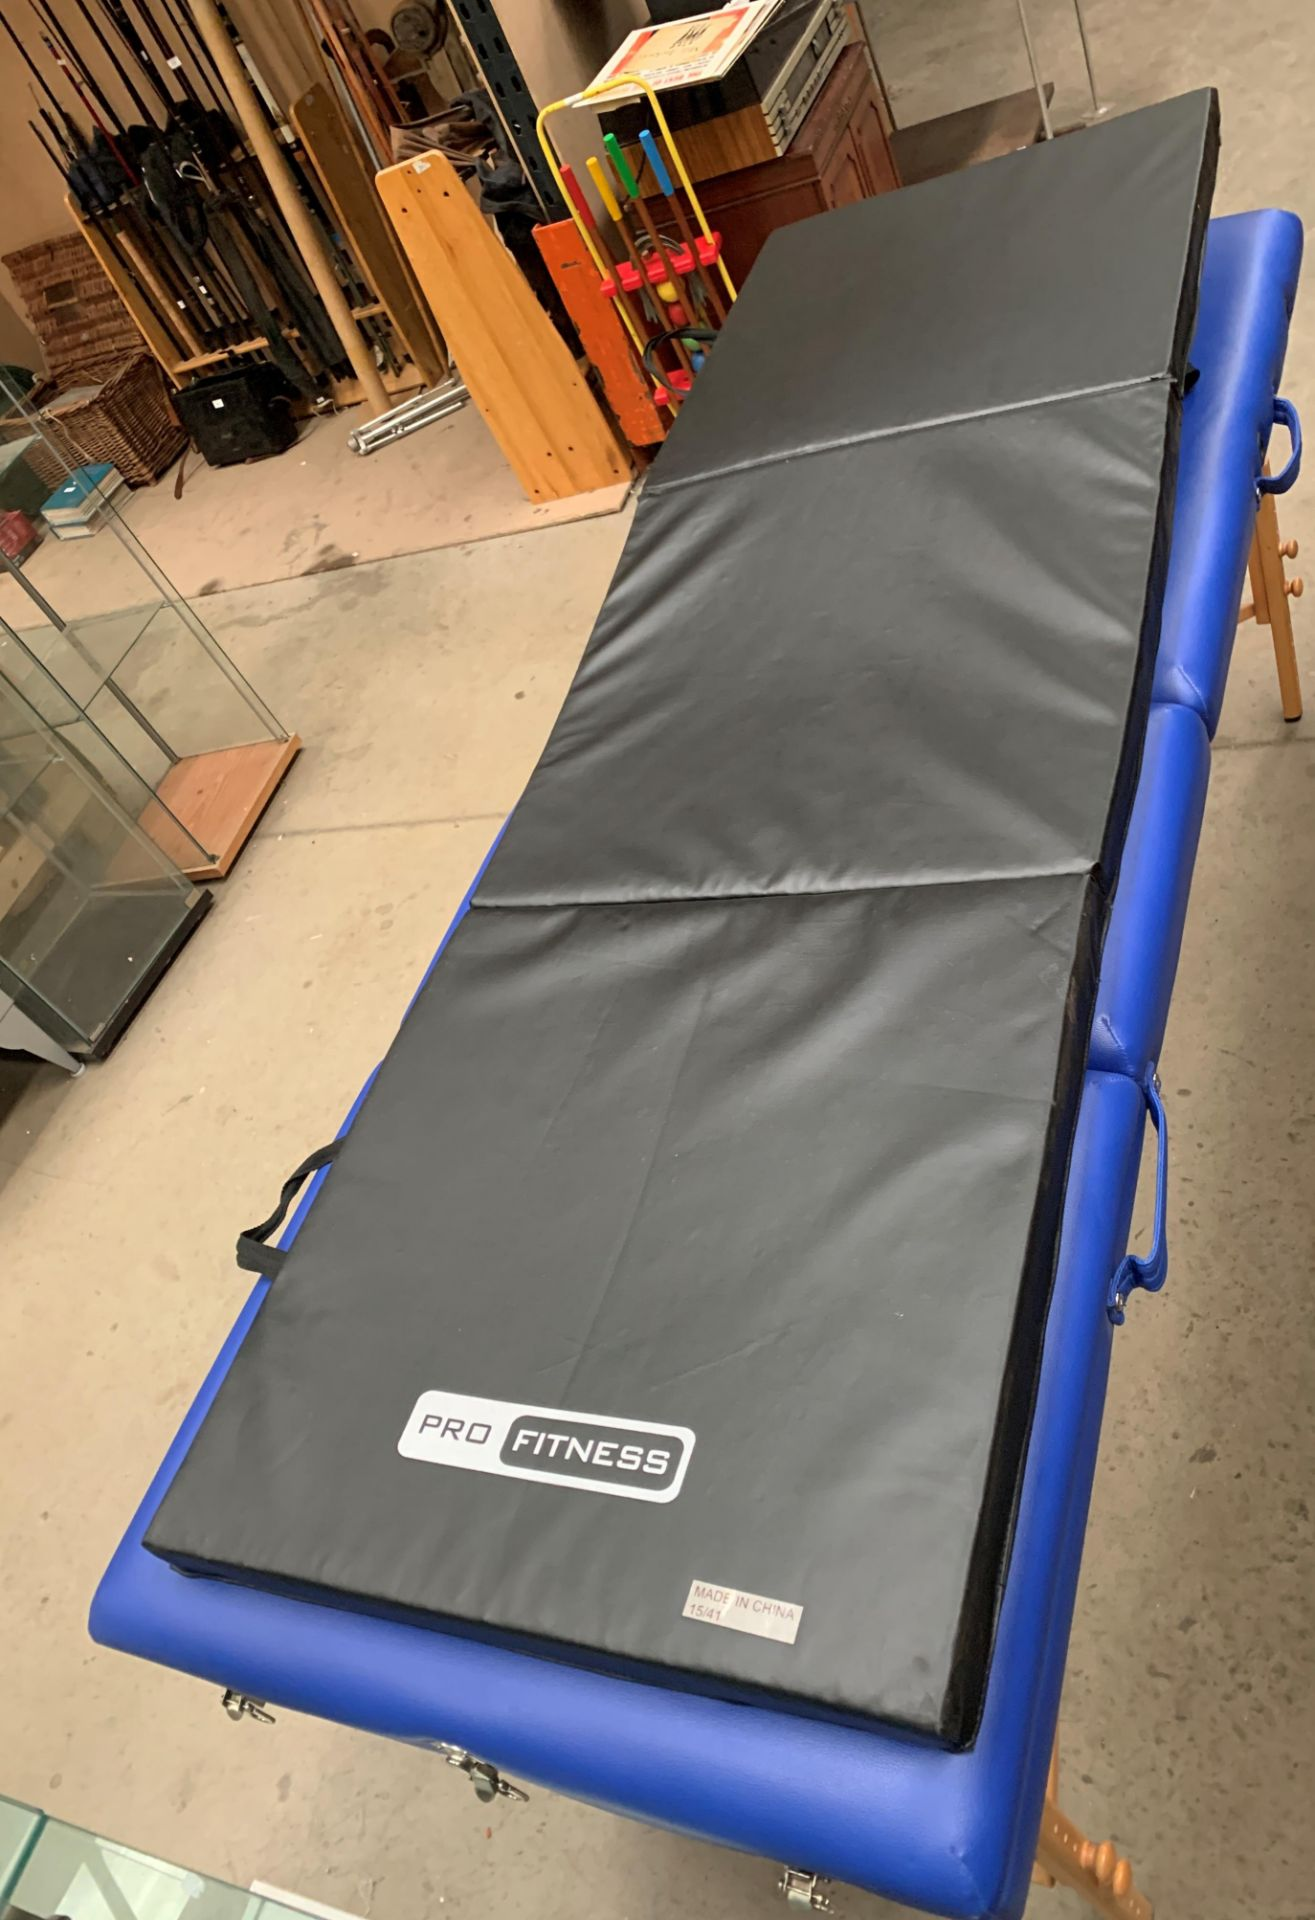 A Healthline Massage Products folding massage bench upholstered in blue PVC complete with carry bag, - Image 6 of 8